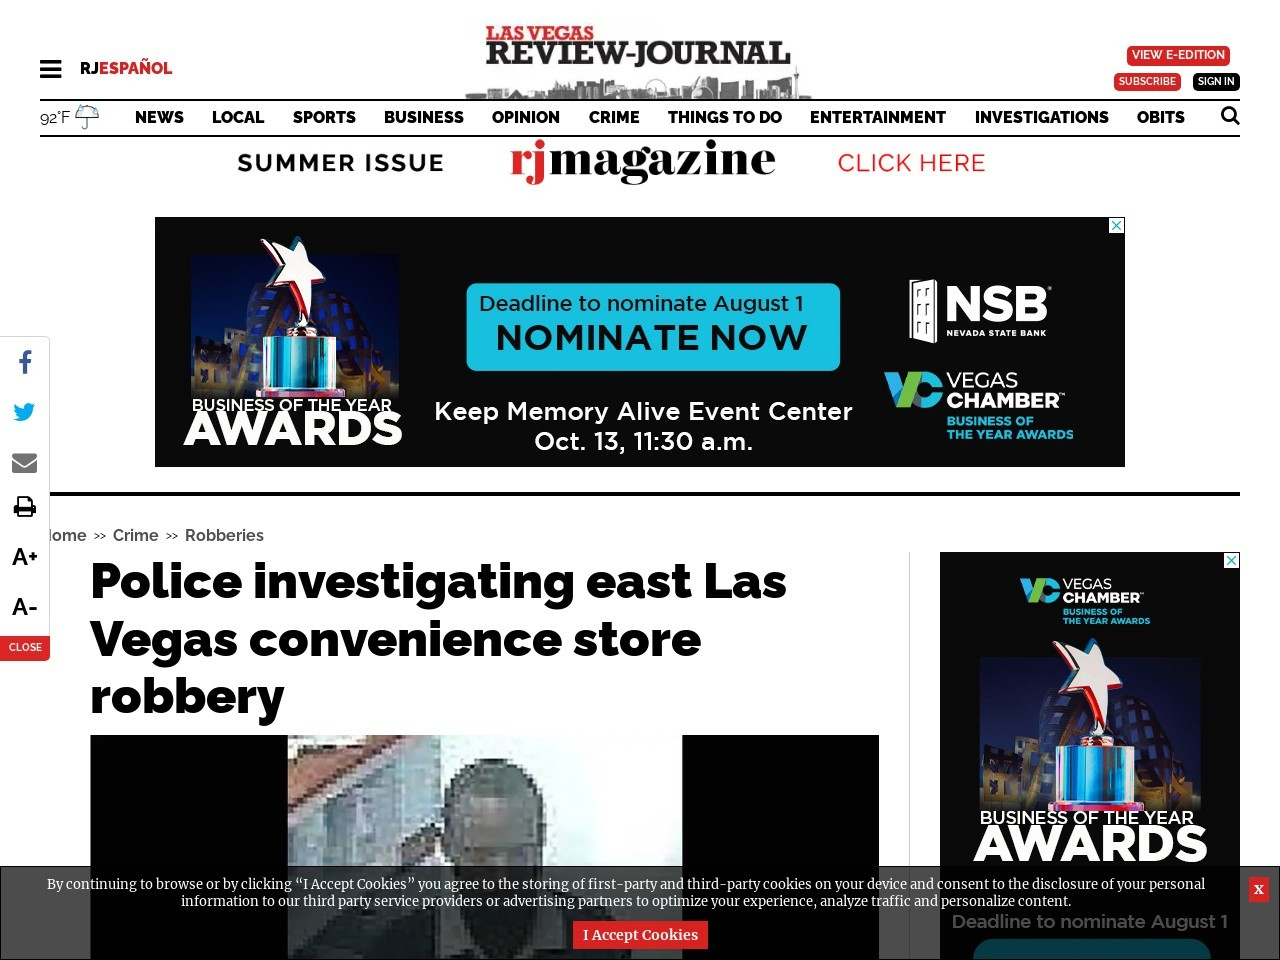 Police investigating east Las Vegas convenience store robbery